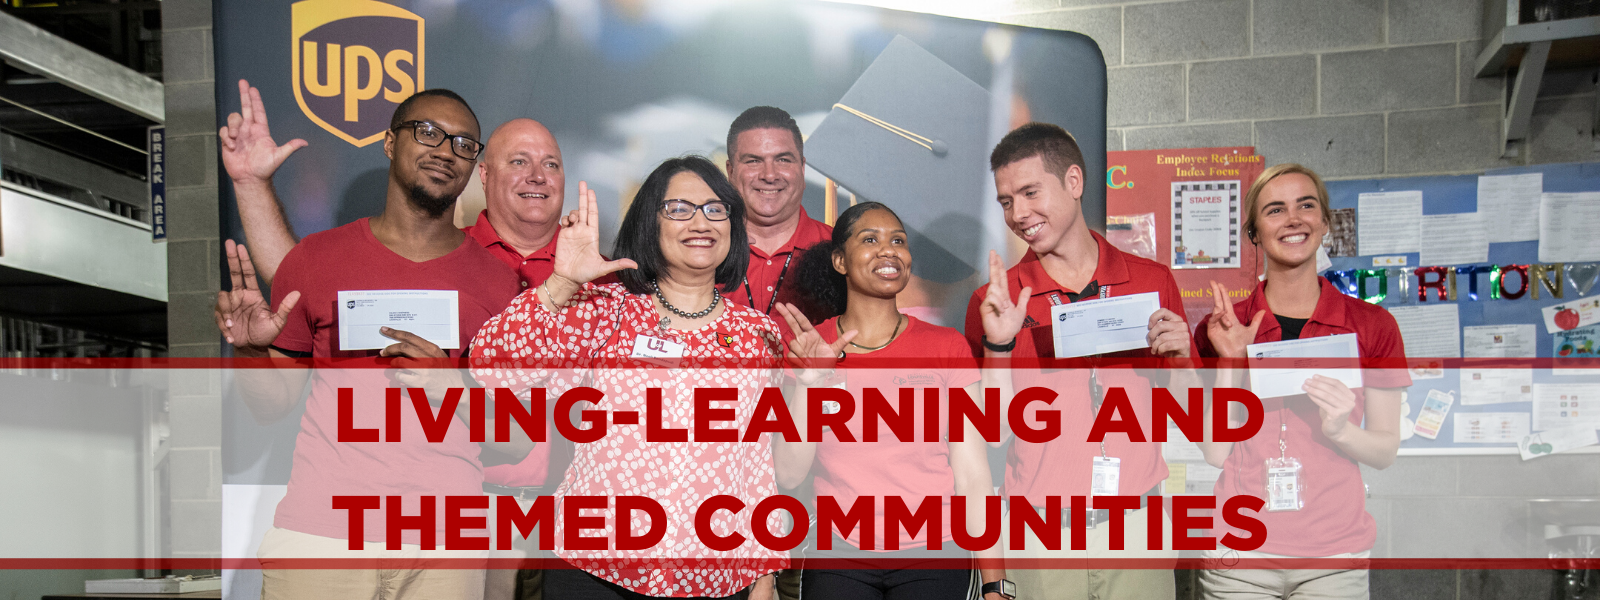 living-learning and themed communities. Fall 2020 - Spring 2021. Find your #cardinal home